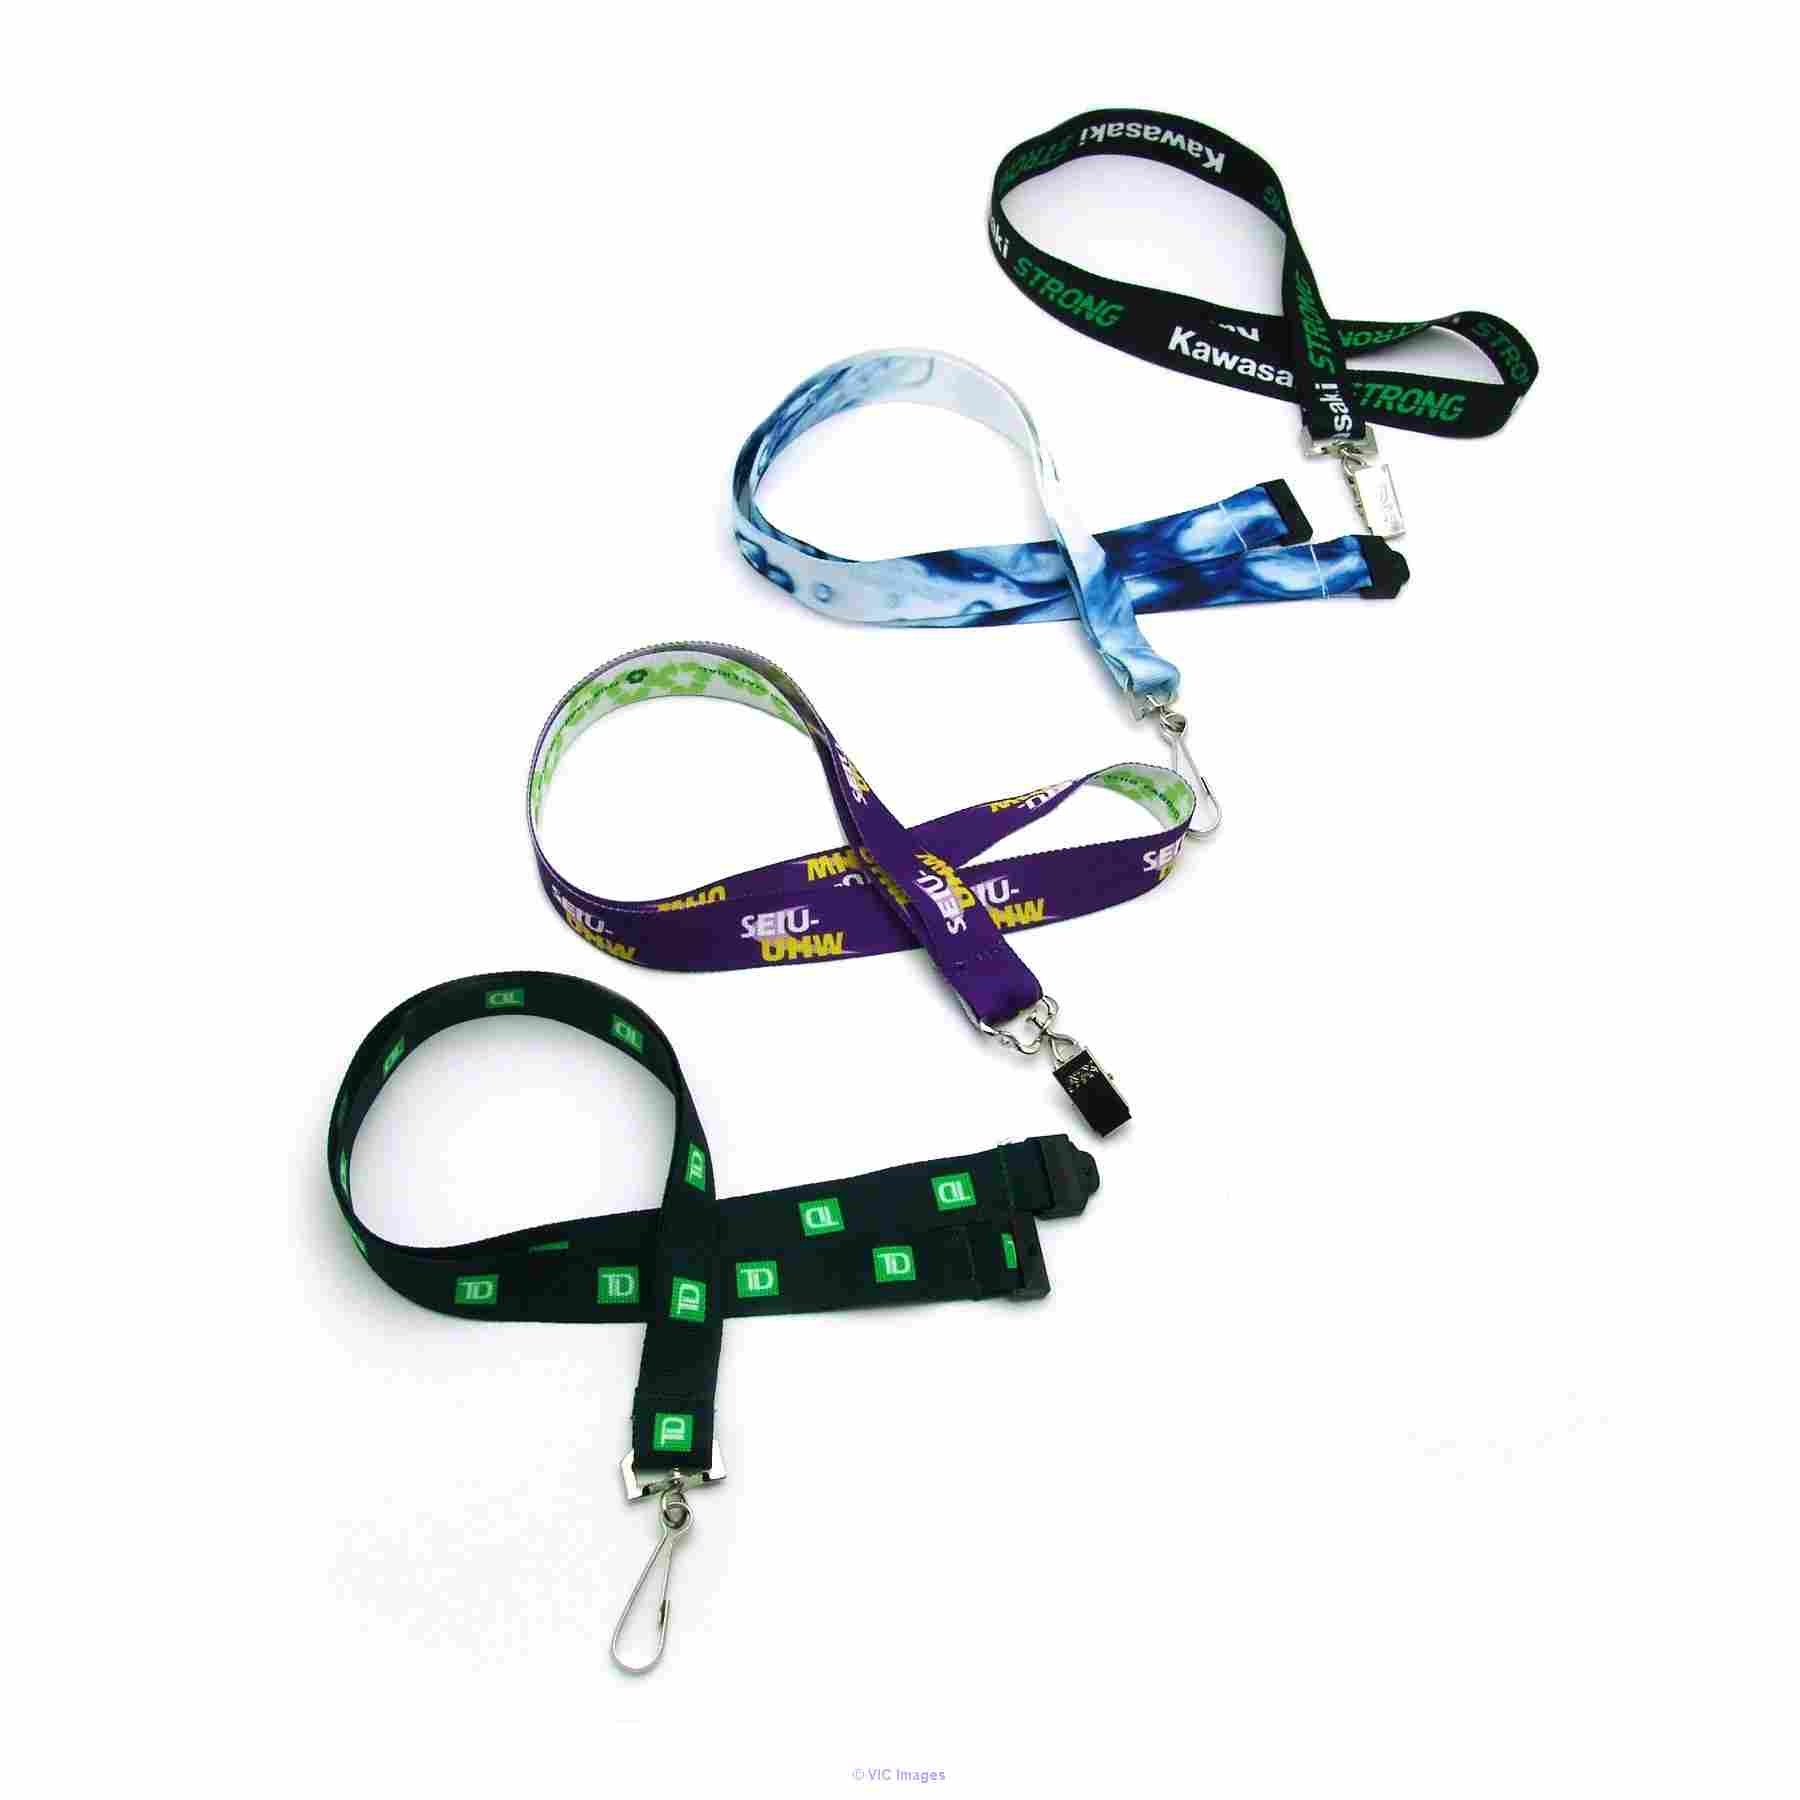 Custom Printed Lanyards and Badges In Victoria, Canada victoria